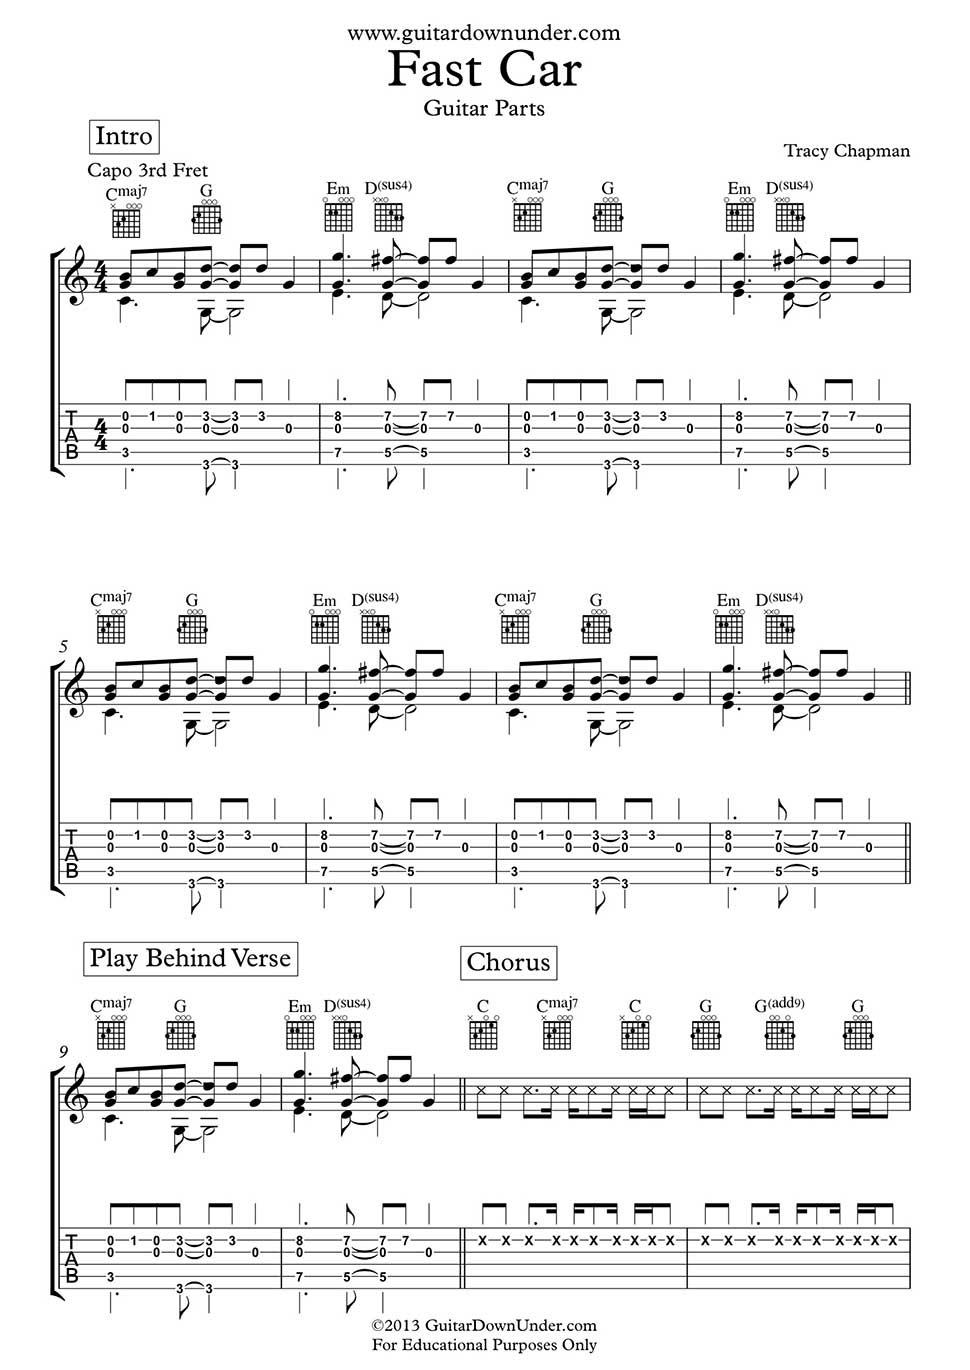 Fast Car Guitar Chords And Tab By Tracy Chapman Arranged For